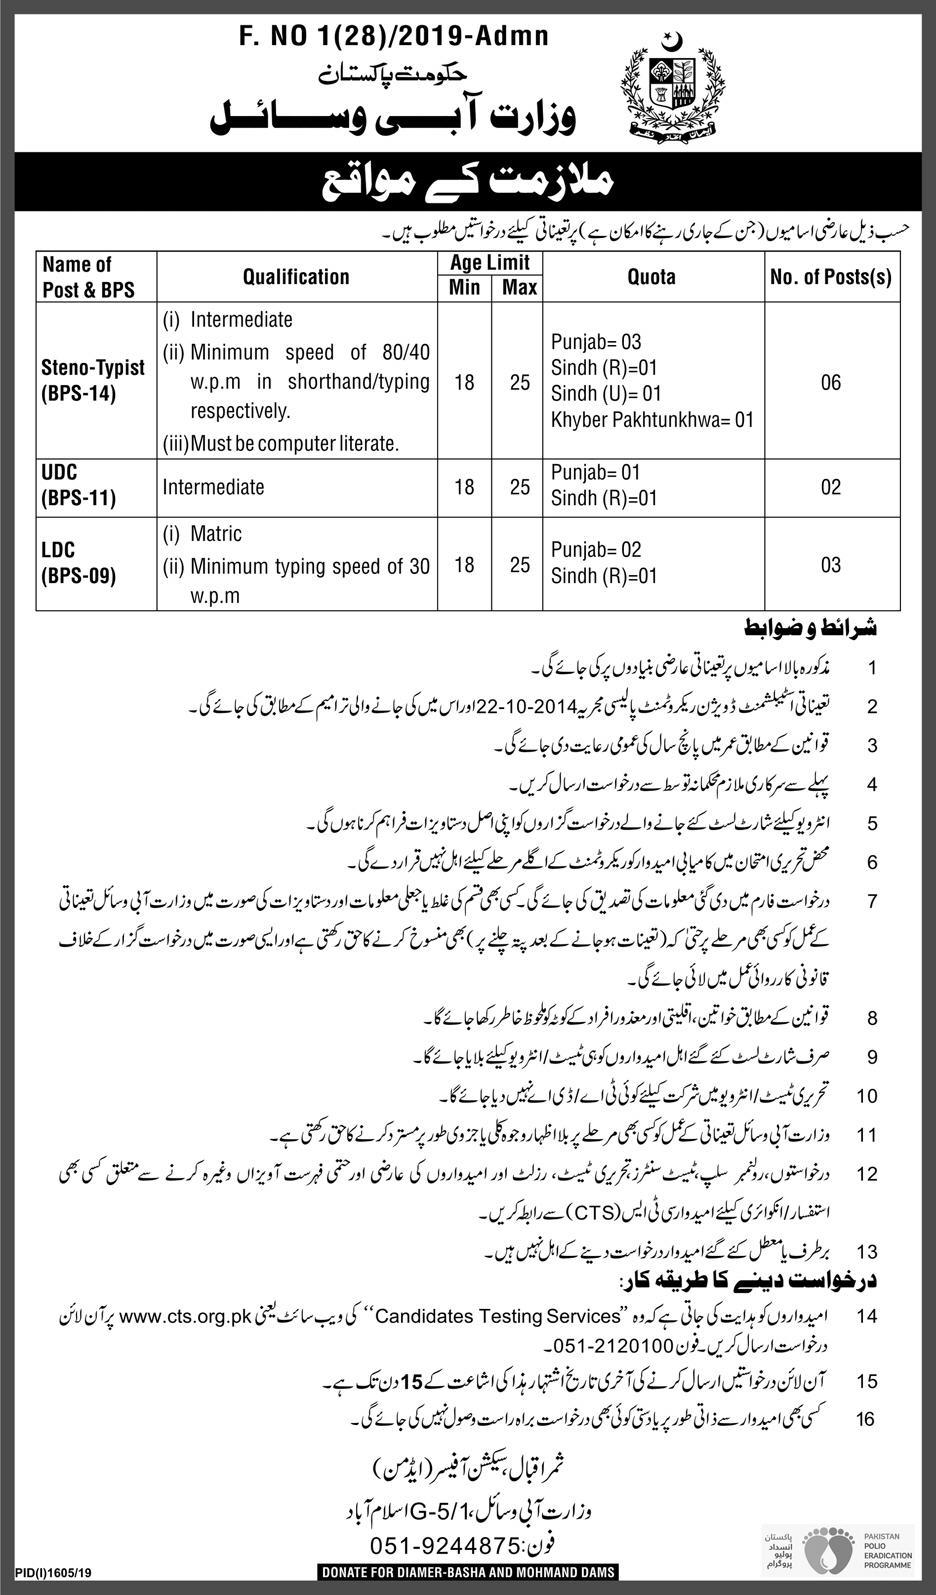 Ministry of Water Resources Pakistan CTS Jobs